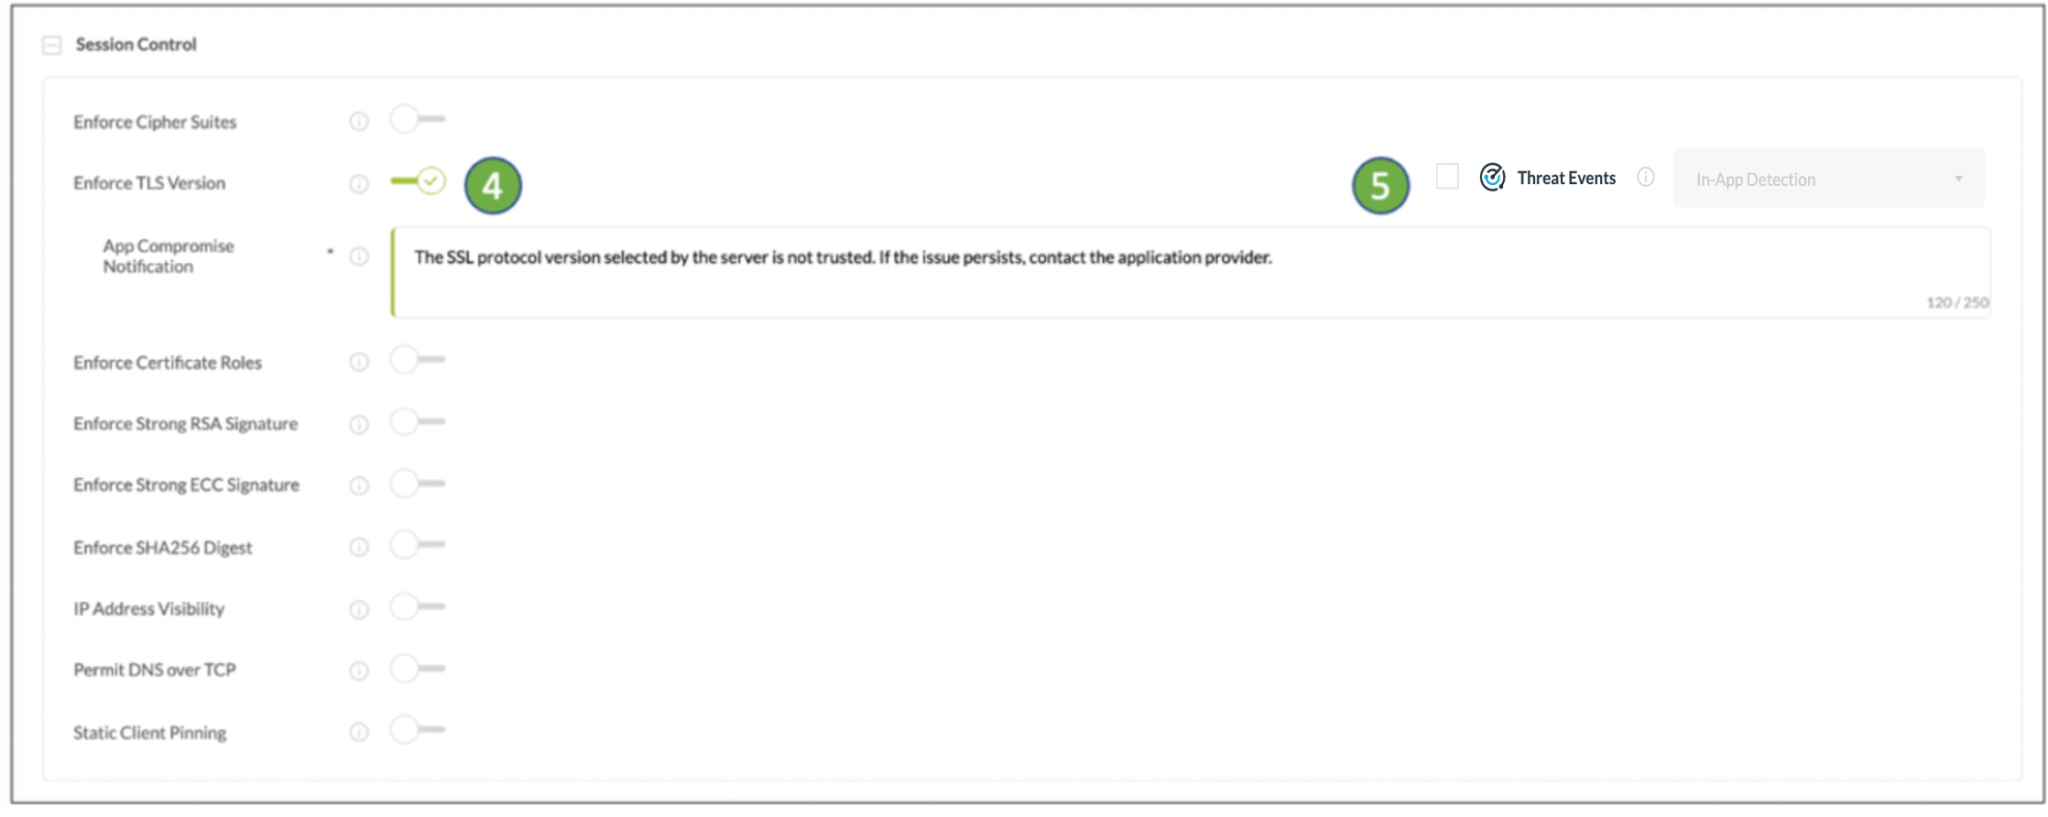 notify users of untrusted TLS version